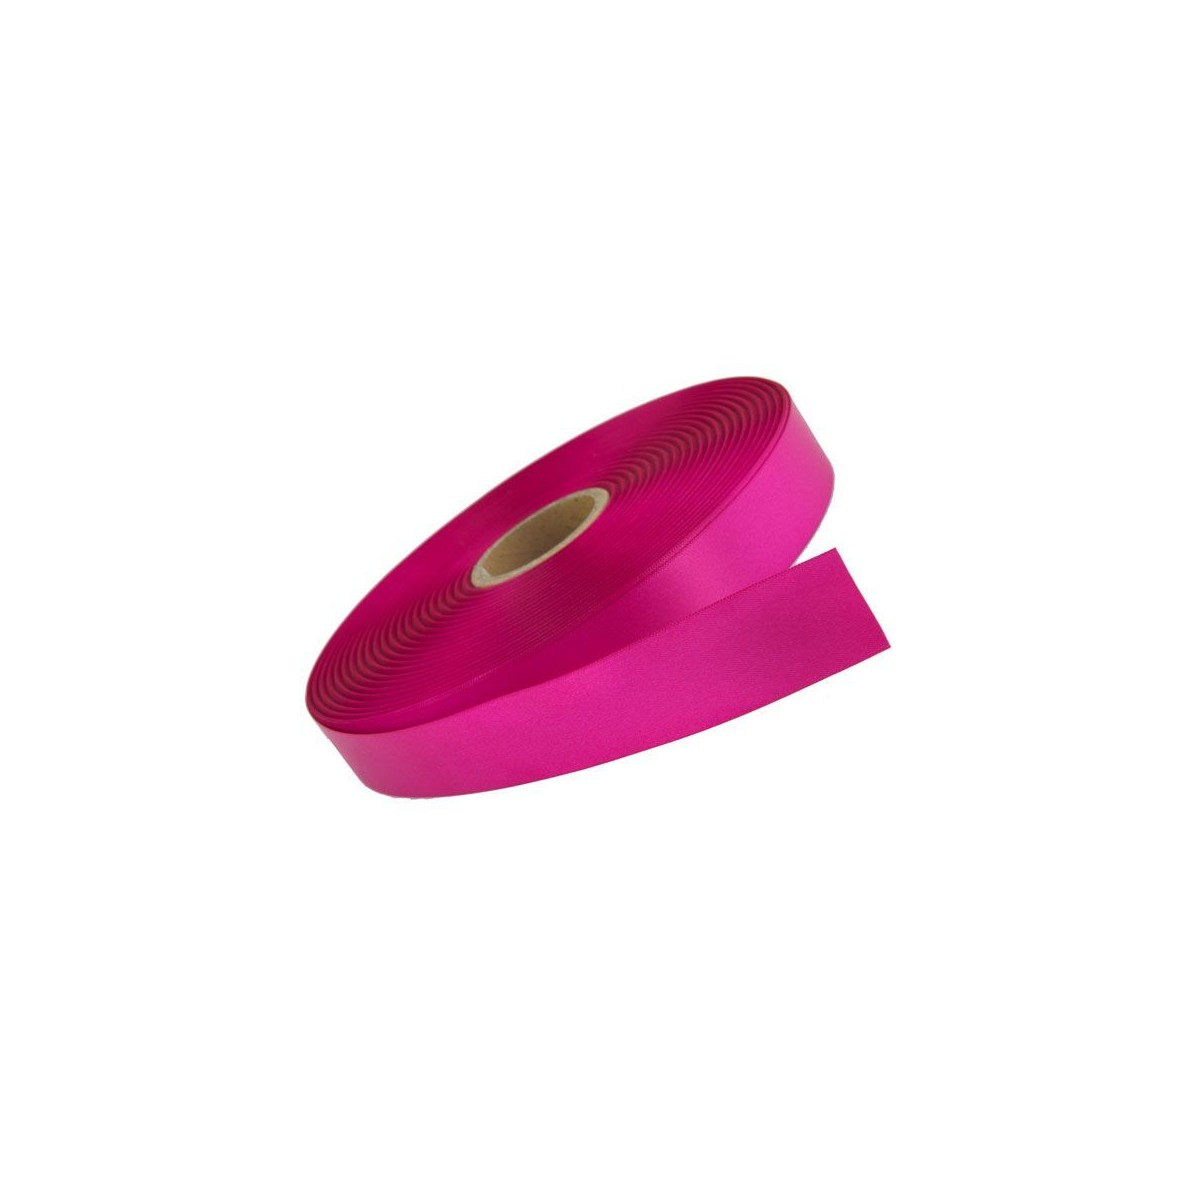 Ruban Satin Fuchsia 6mm -25m